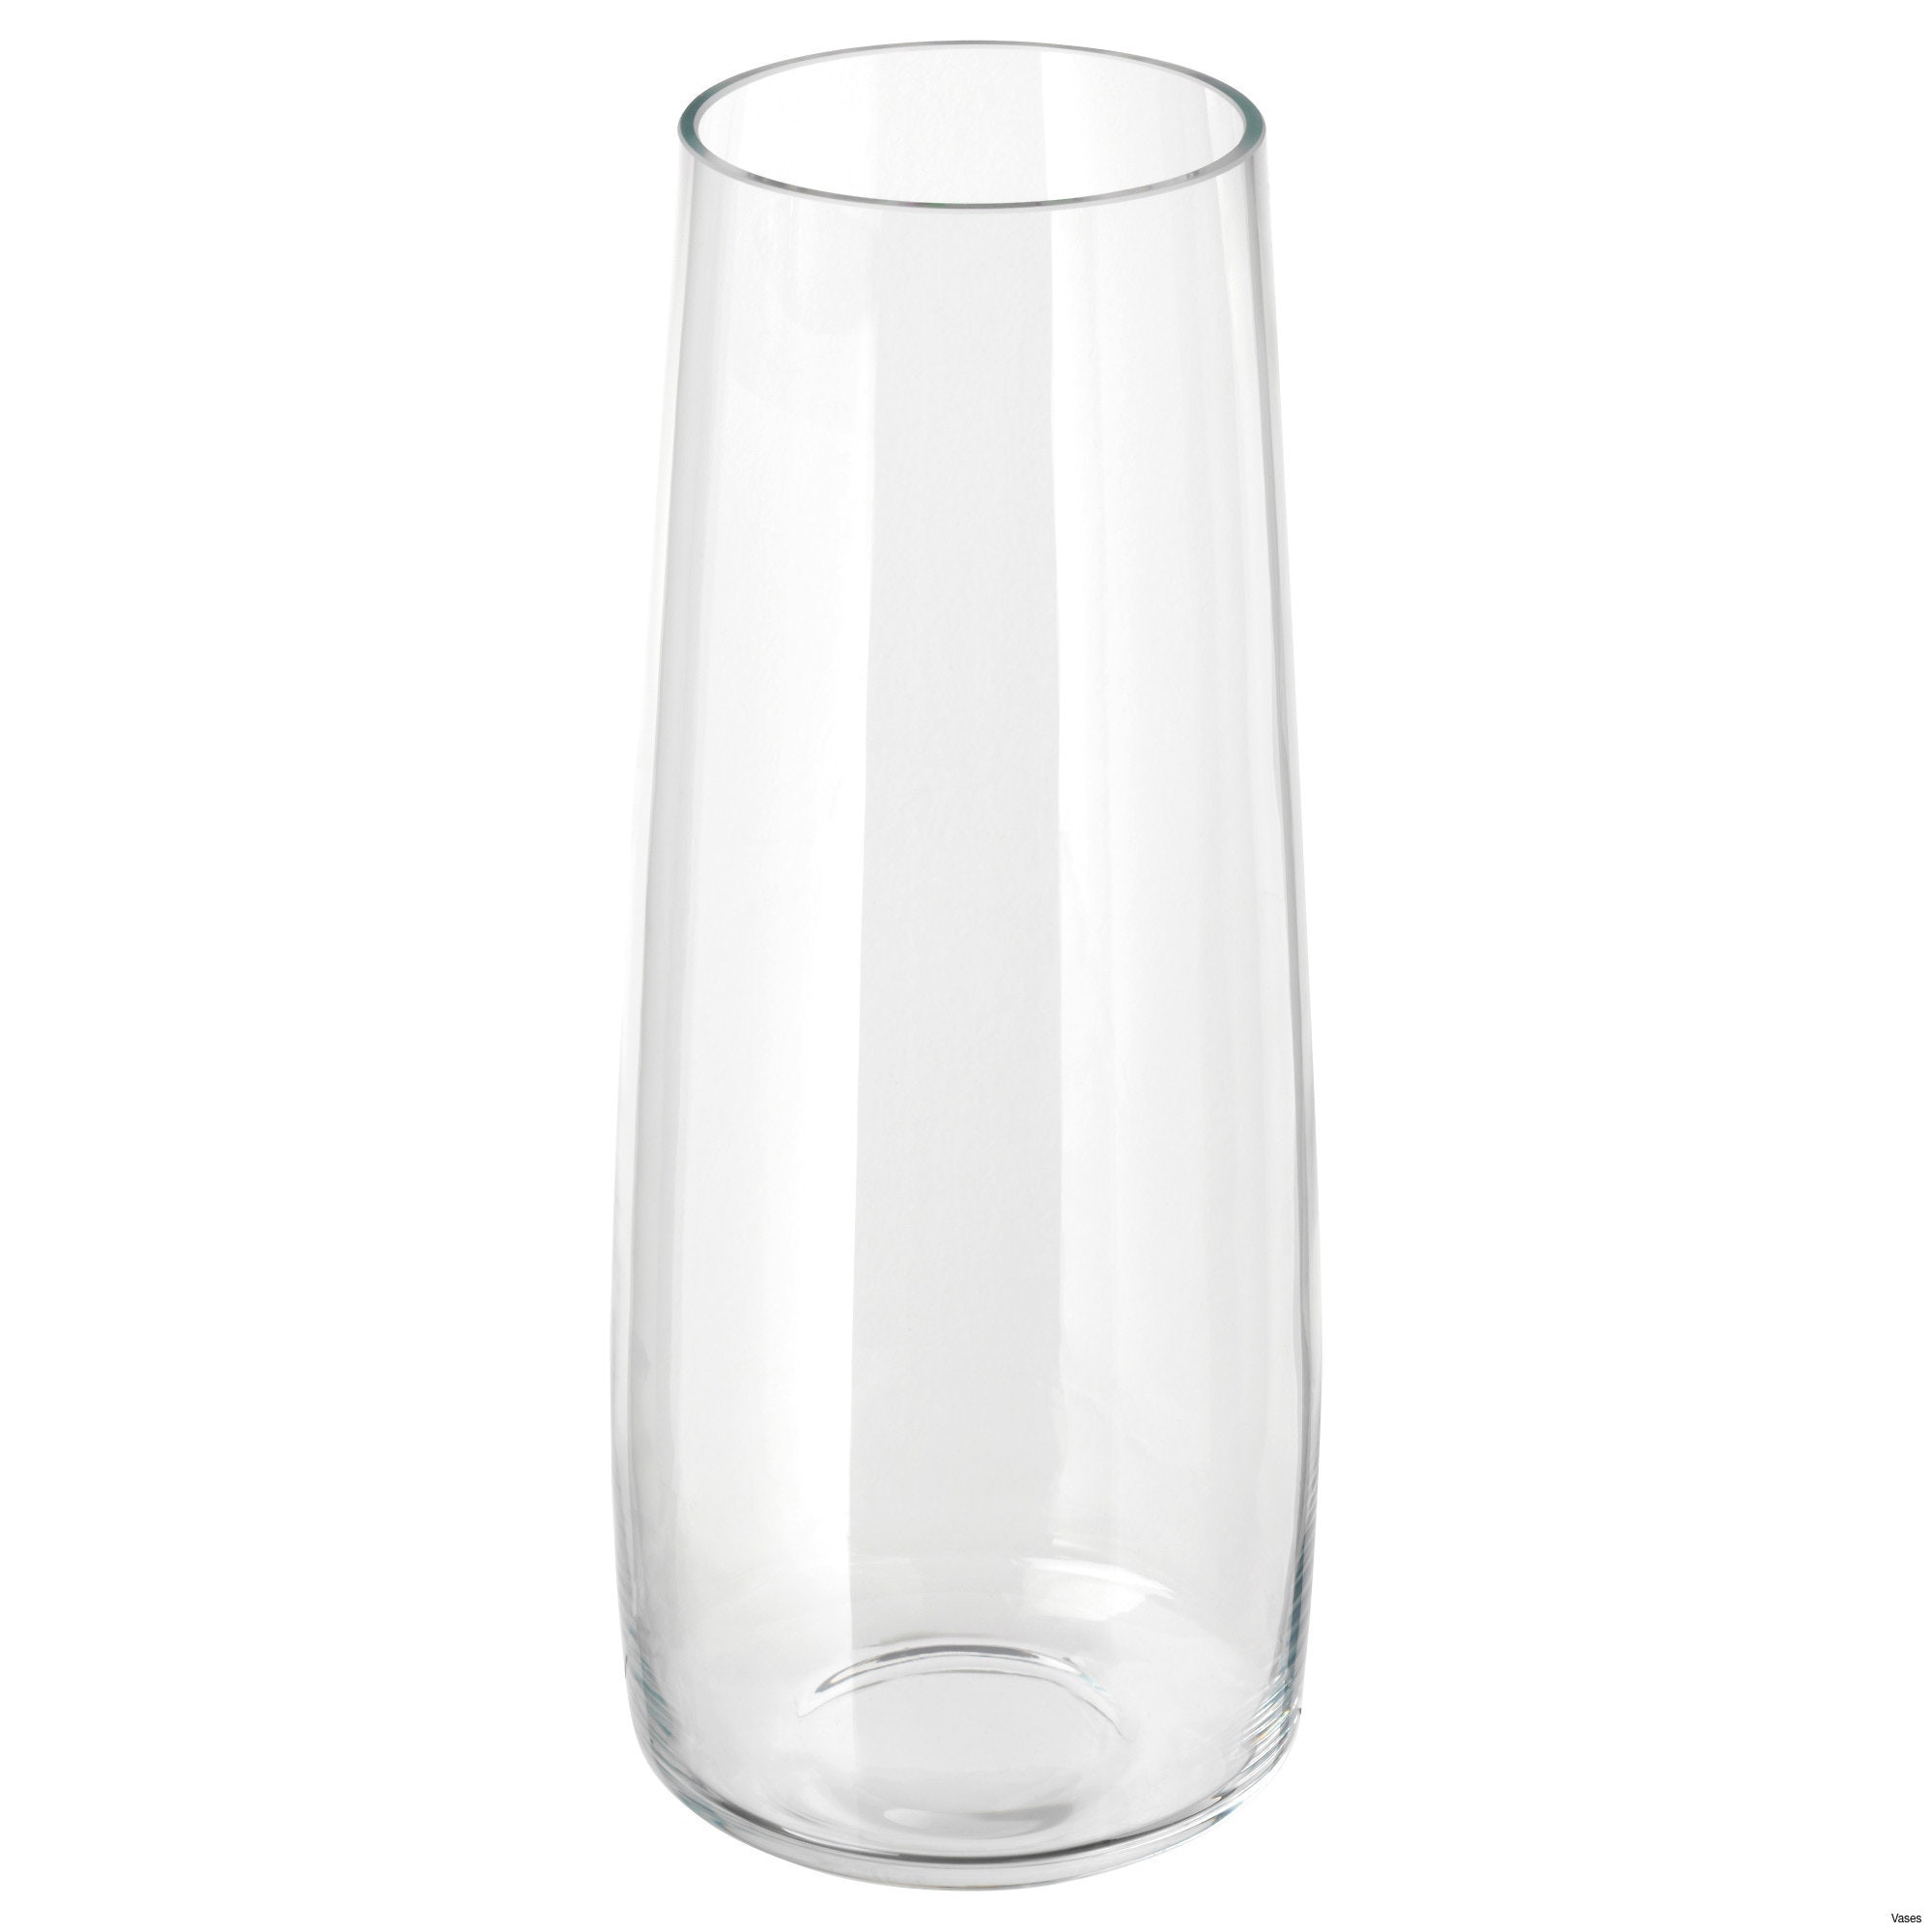 libbey glass vases of large clear glass vase photos clear glass vases vases artificial throughout large clear glass vase pics clear glass planters fresh clear glass vases of large clear glass